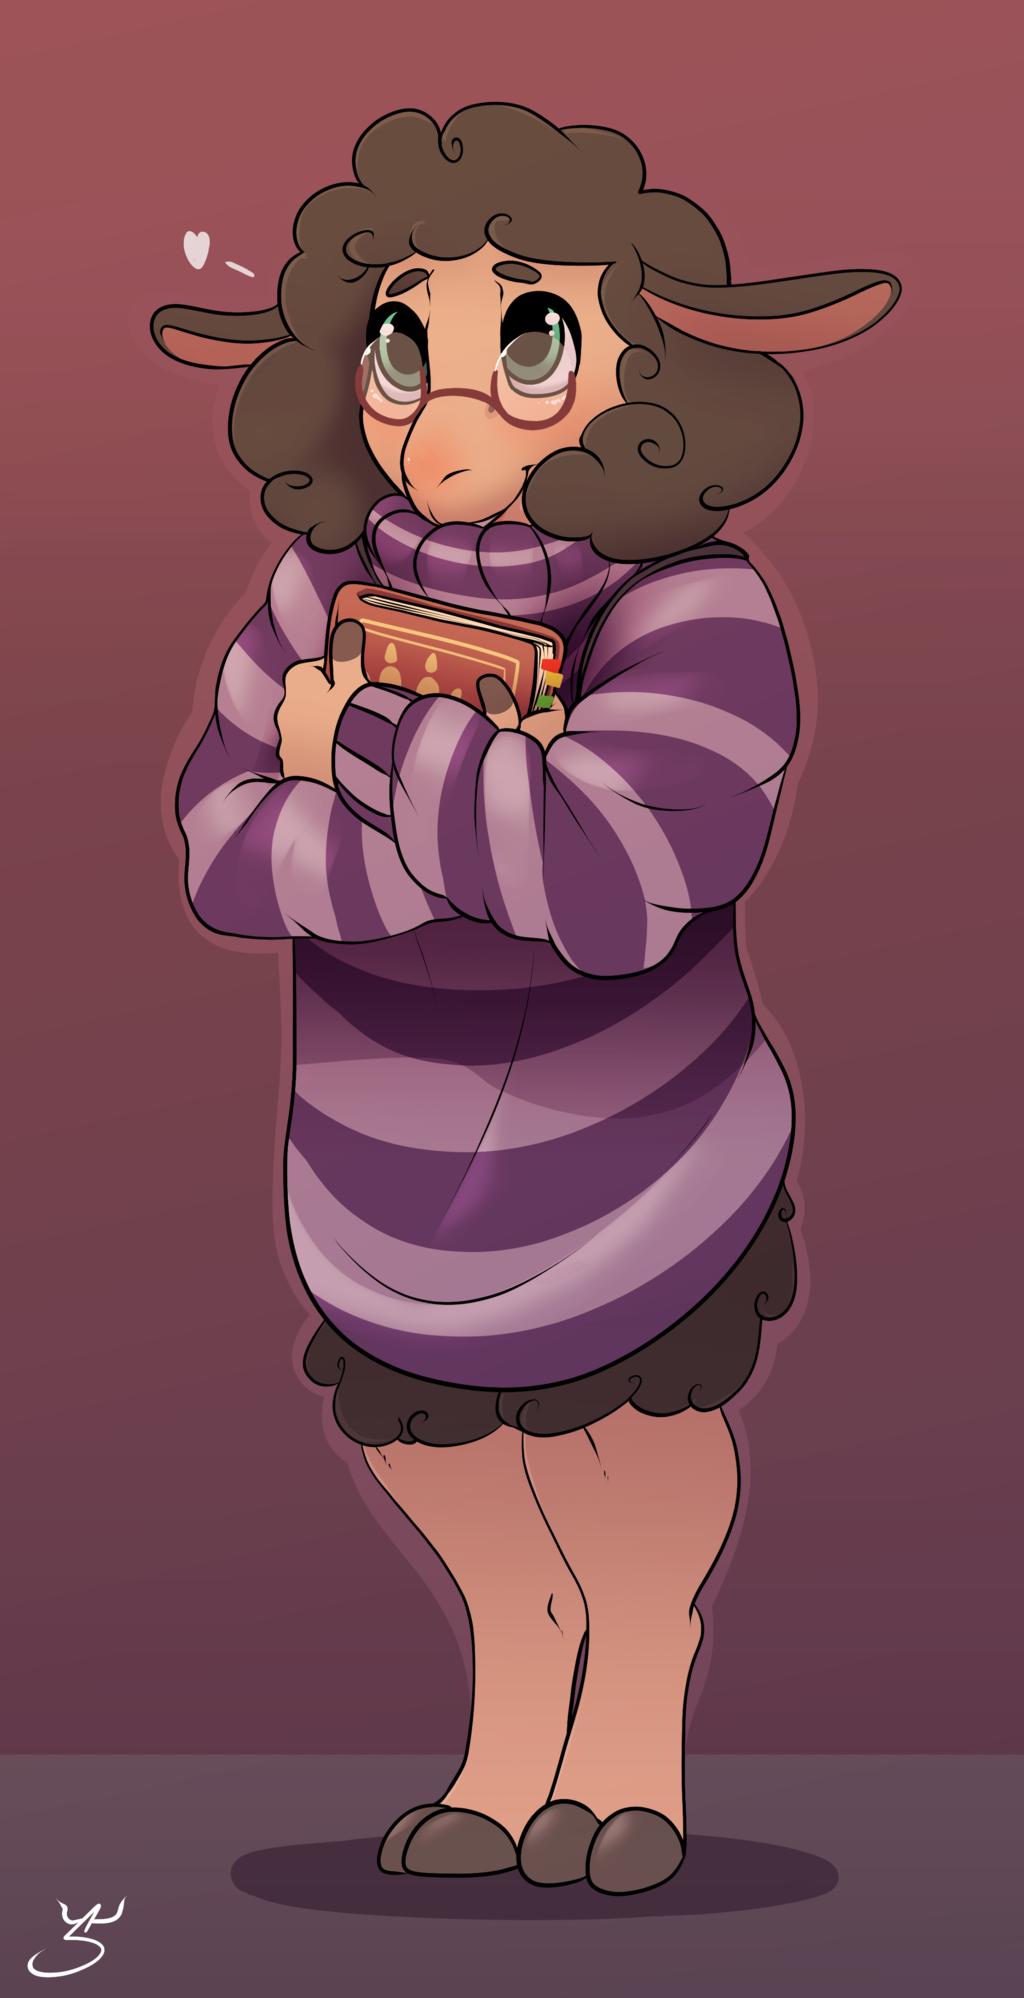 Most recent image: Little Librarian